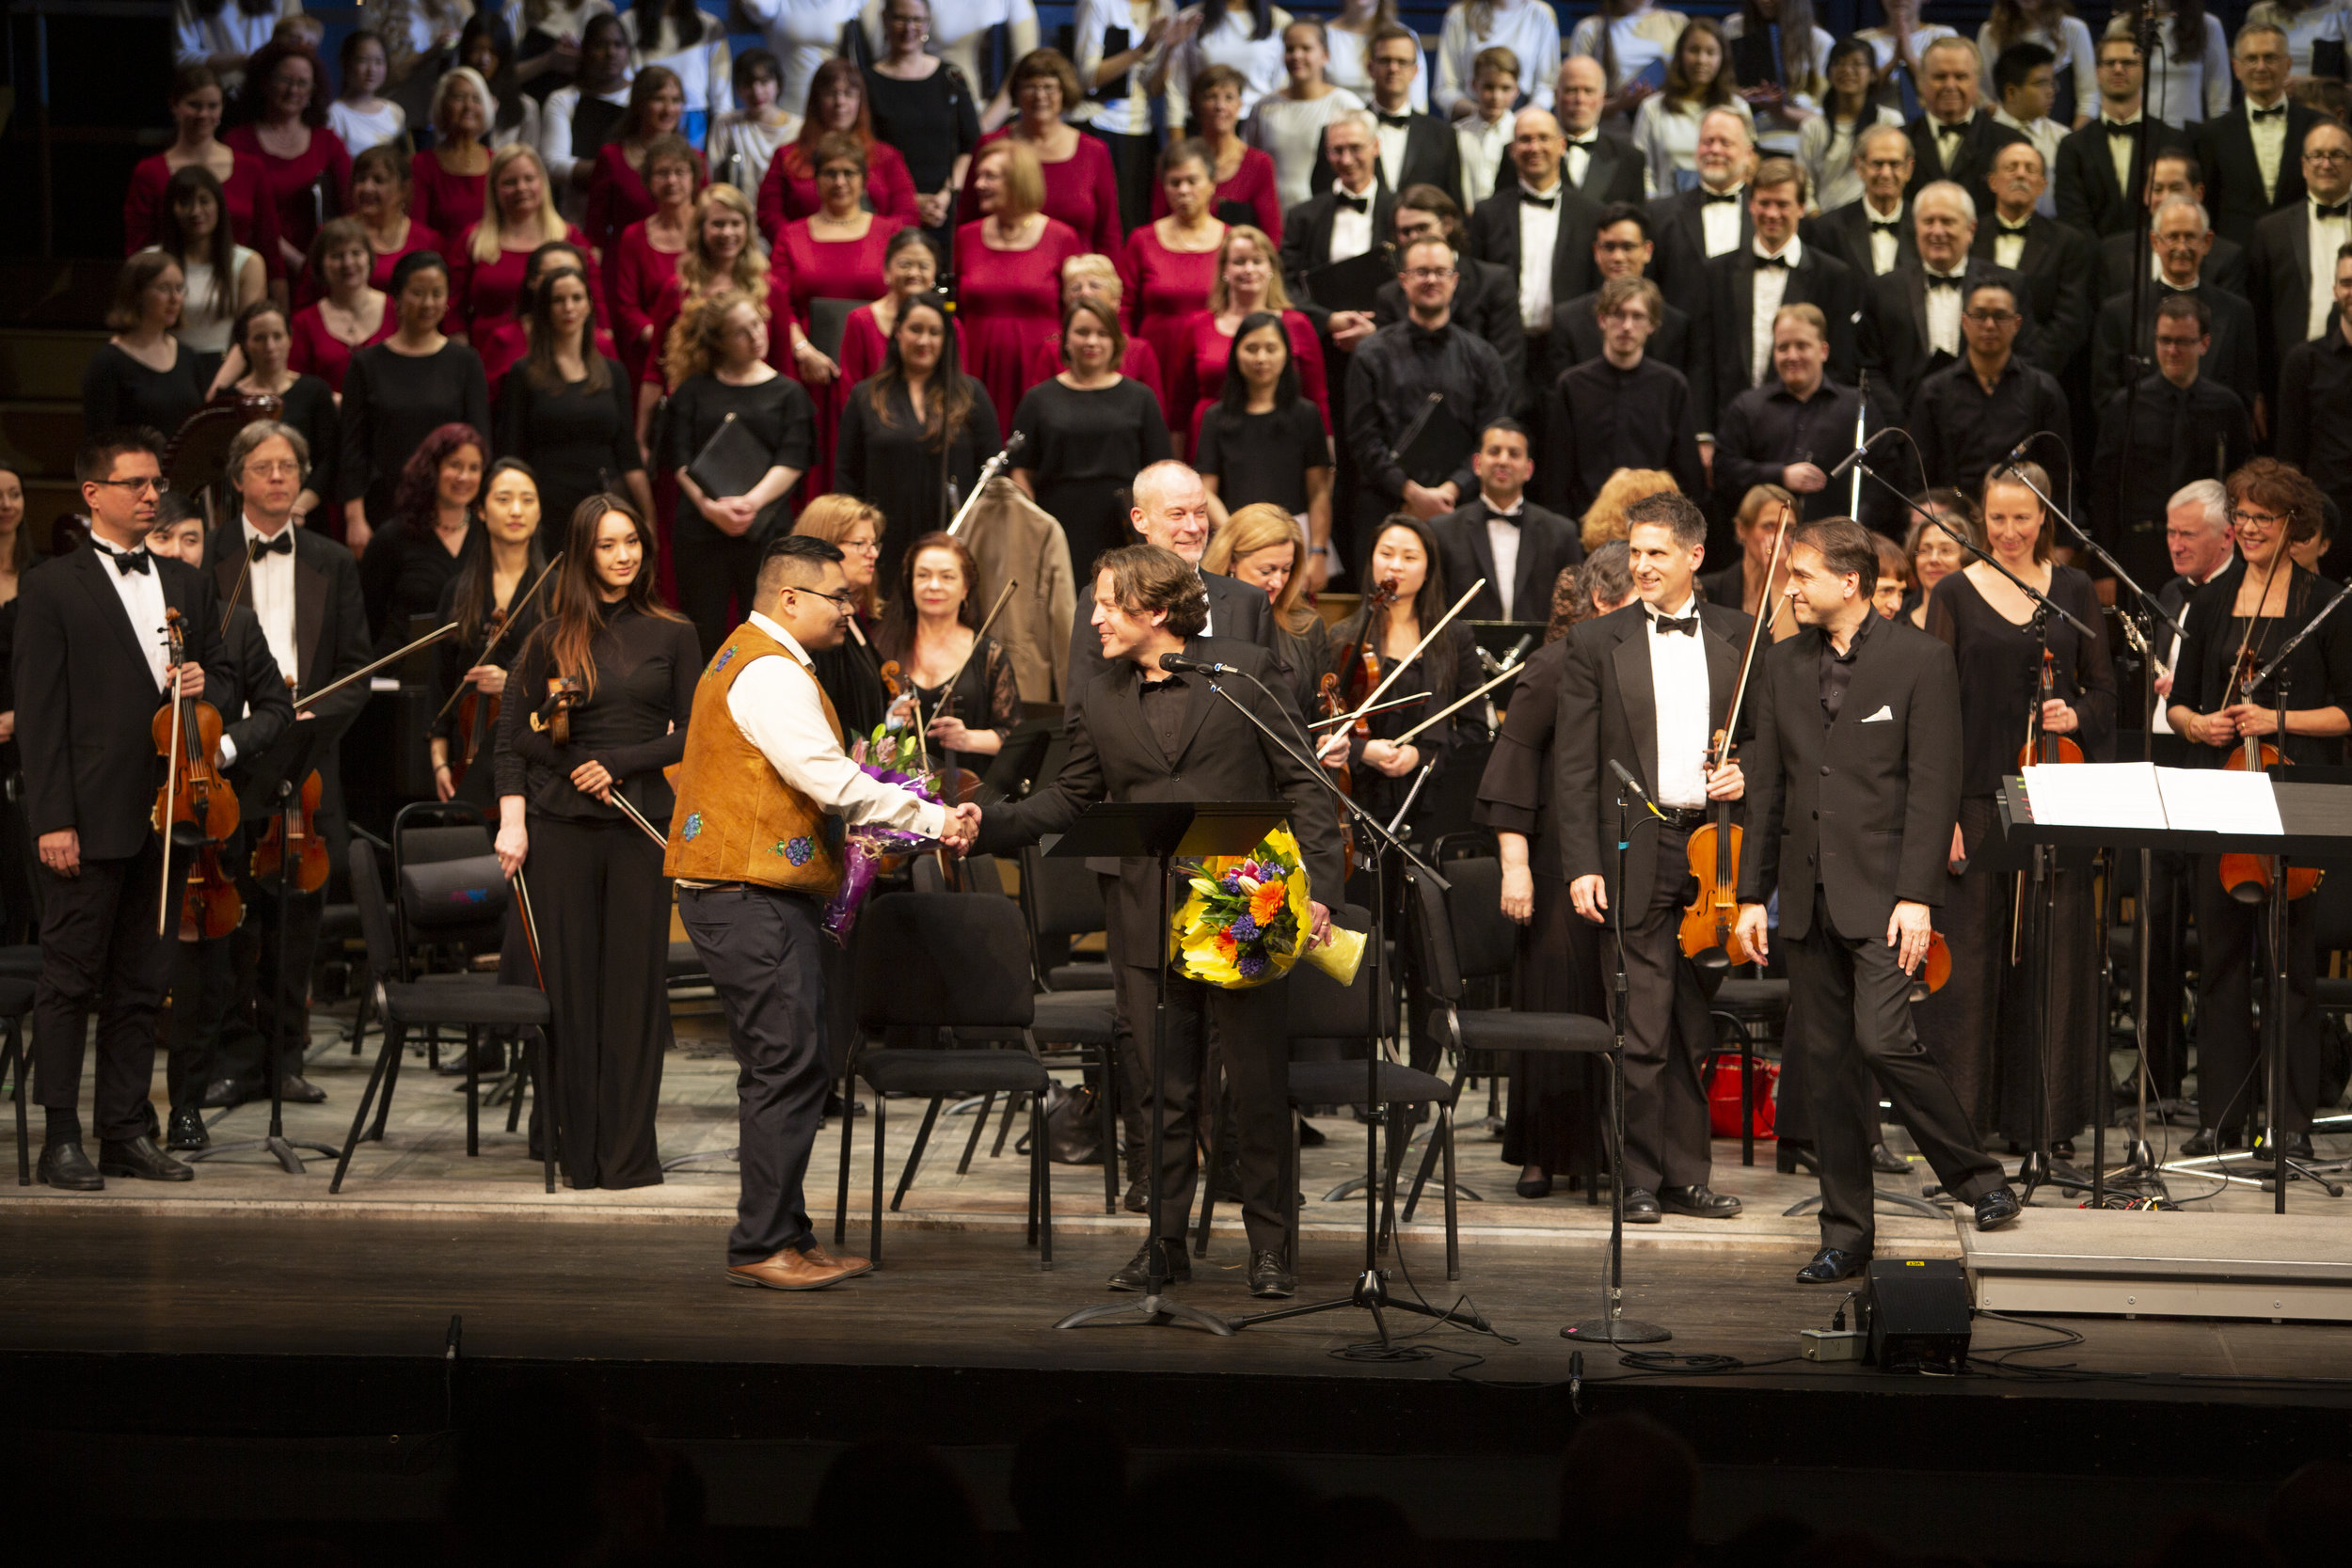 May 3 2019 - Thanking Narrator Mason Mantla (Tlicho) following the world premiere of the full evening oratorio  The River Of Light  by Vancouver Opera and Vancouver Bach Choir.